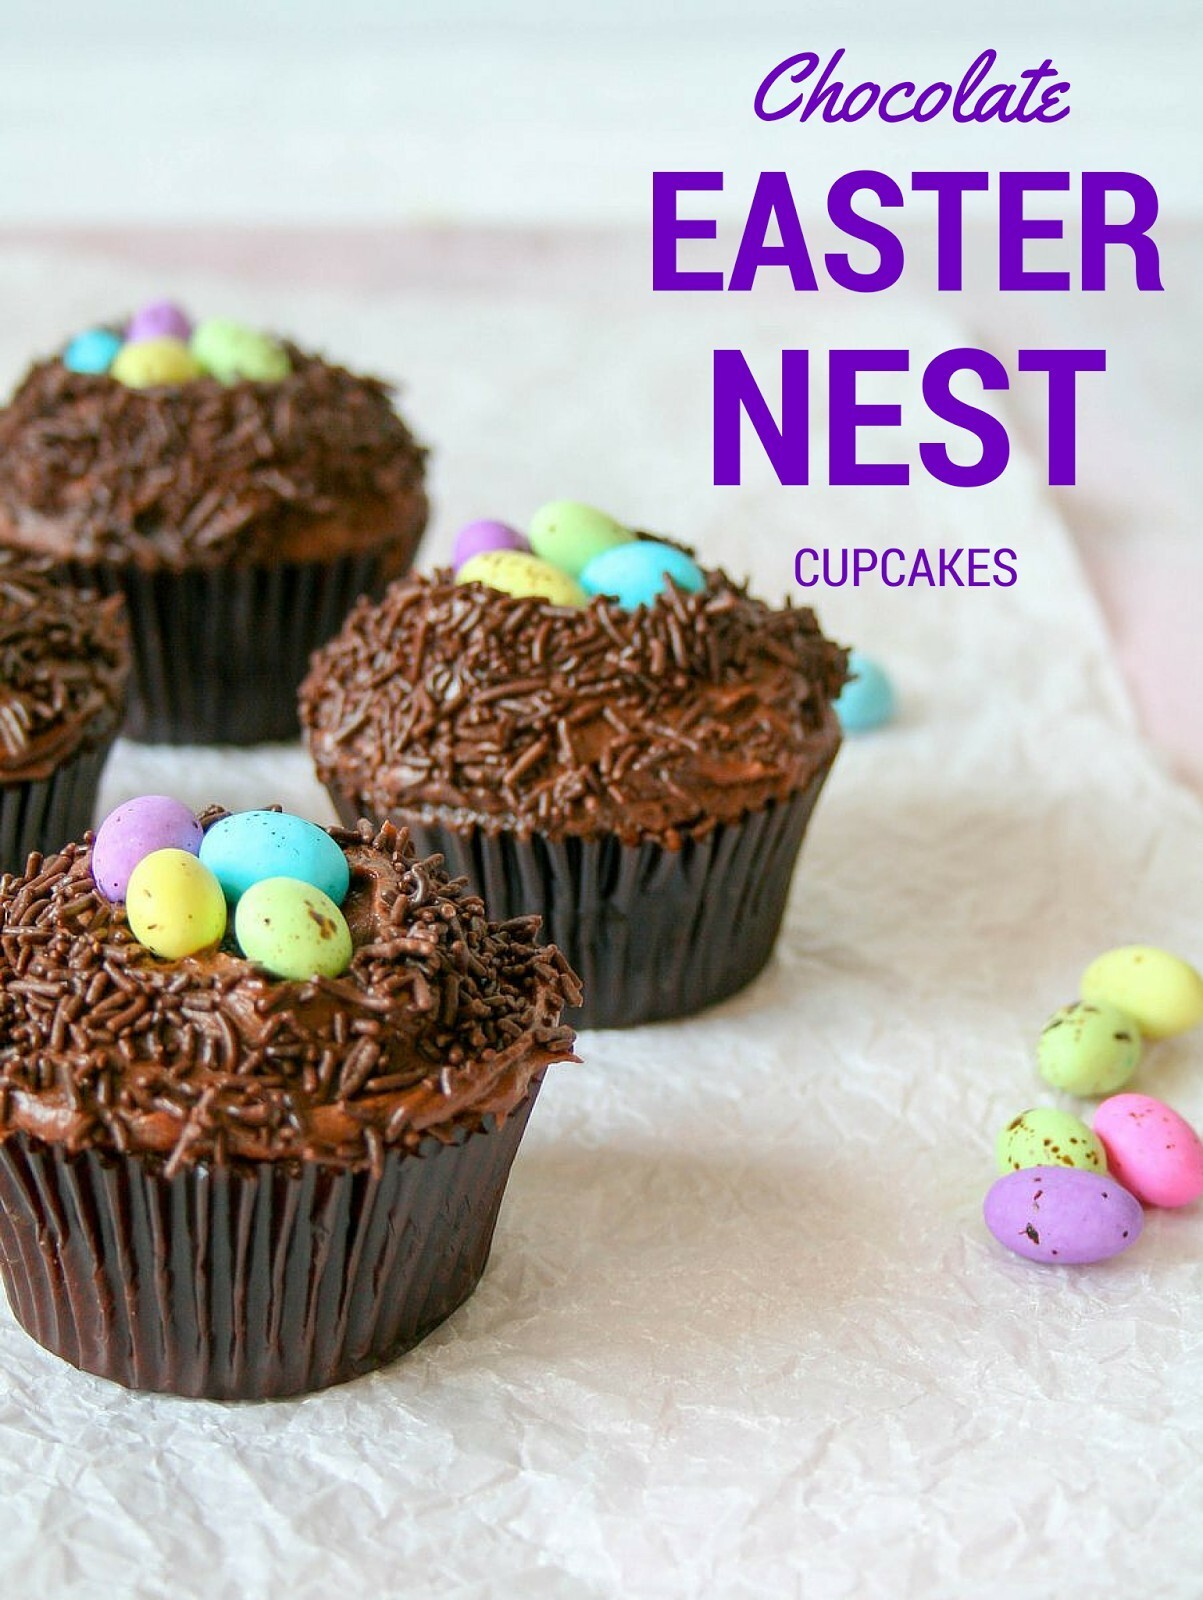 cupcakes-and-couscous wrote a new post, CHOCOLATE EASTER NEST CUPCAKES, on the site Cupcakes & Couscous